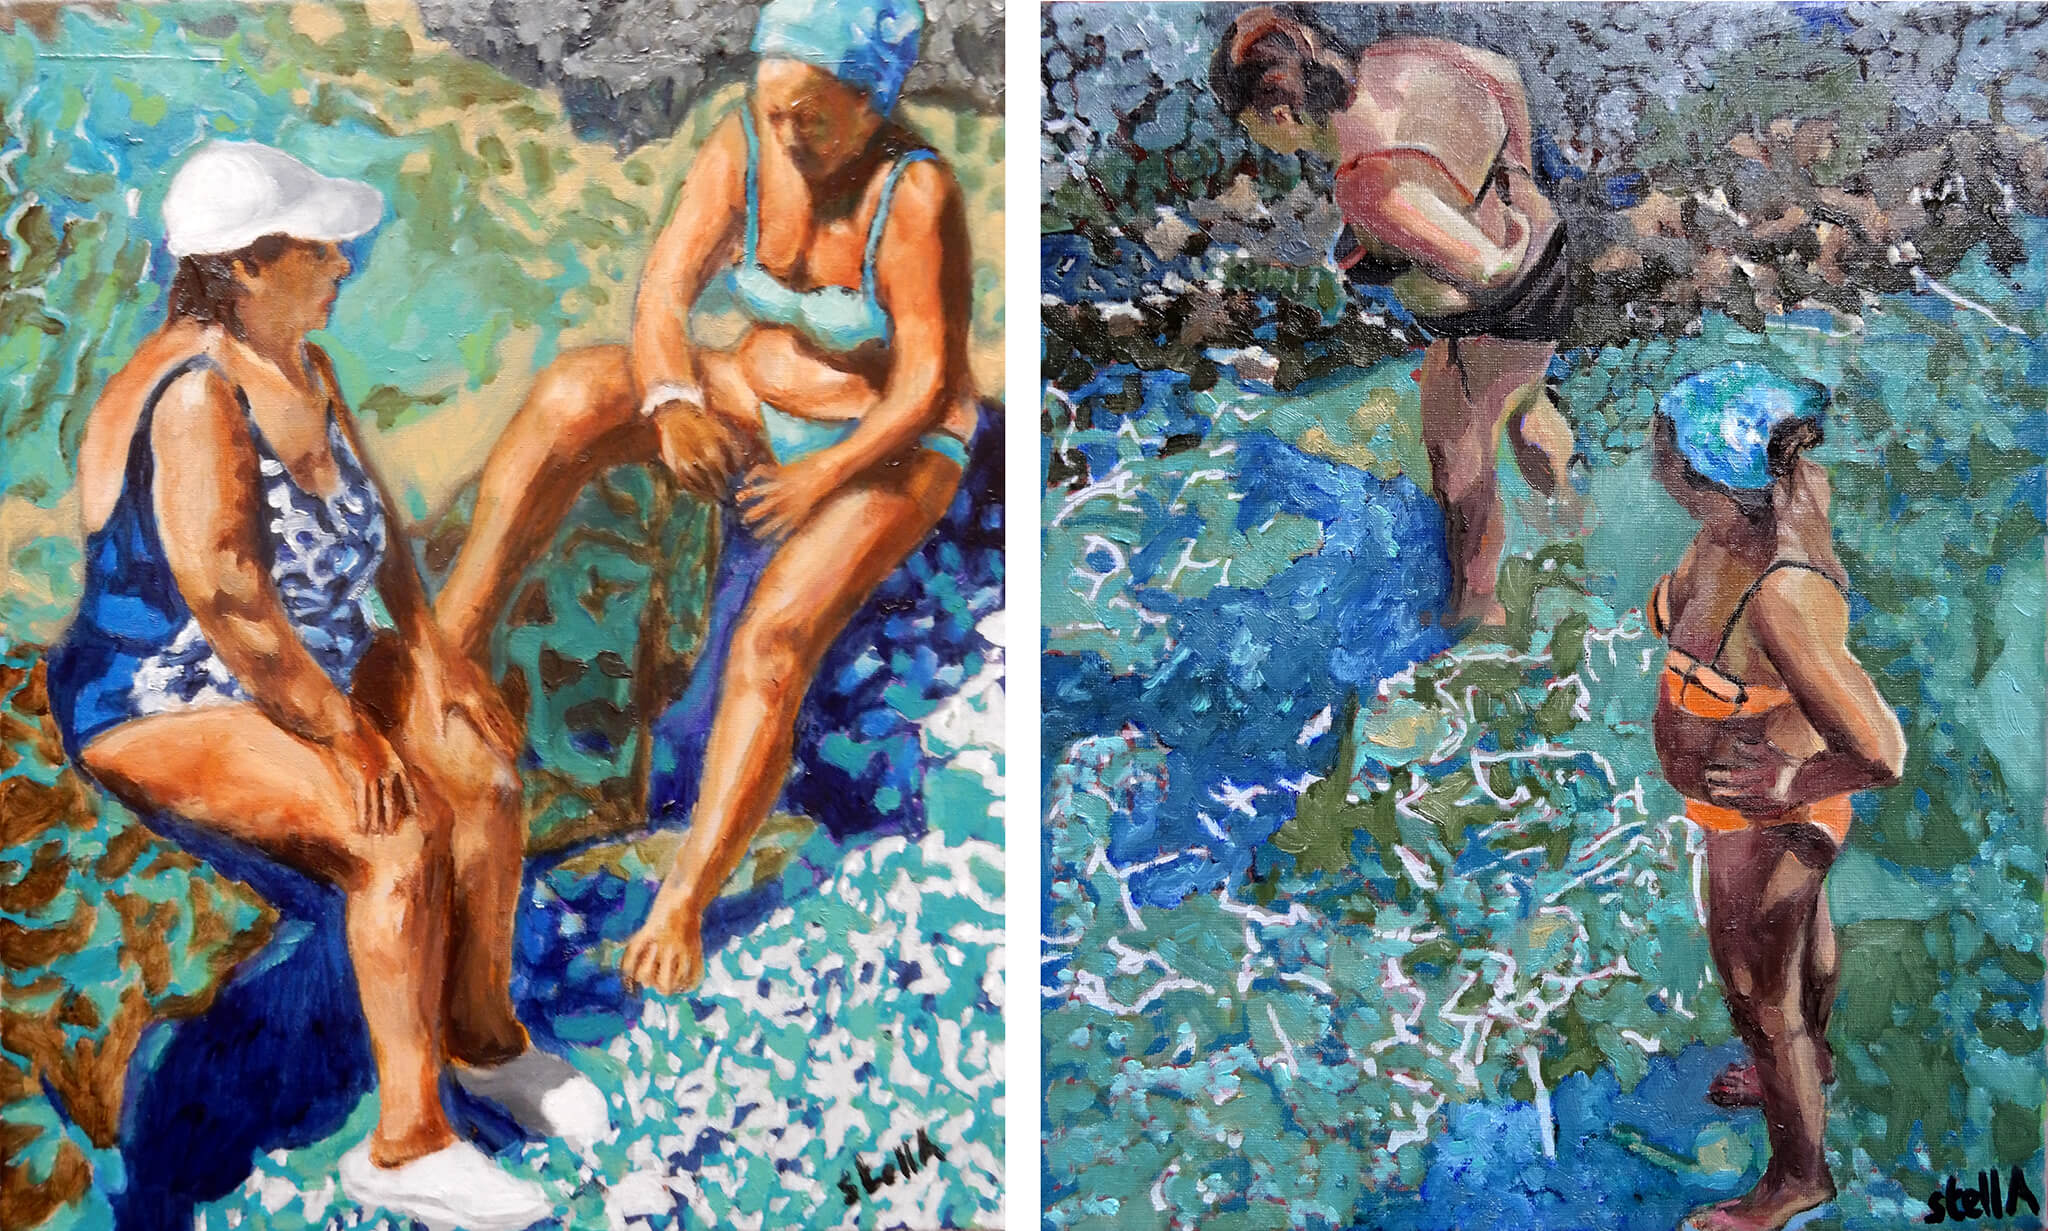 Artworks from Stella Tooth's oil on canvas Ischia bather series.